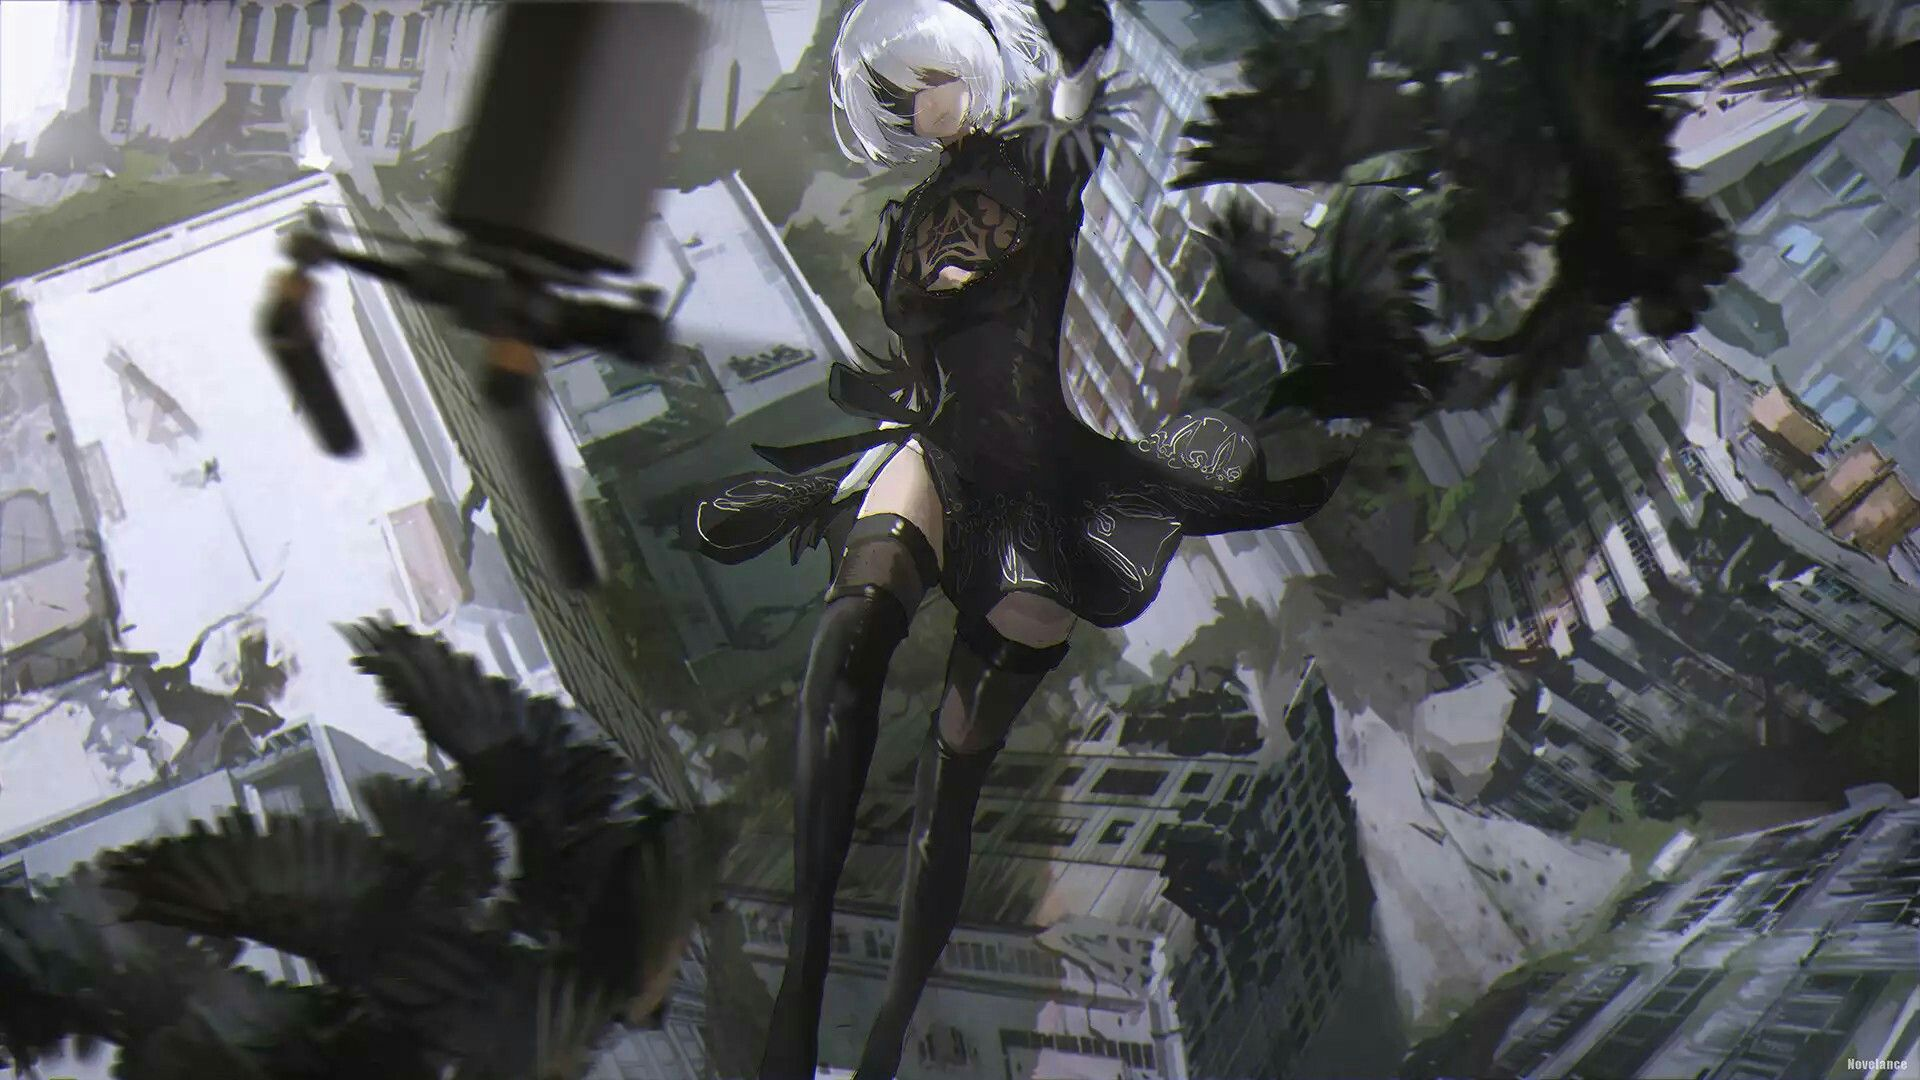 Hd wallpaper nier automata - Nier Automata Nier Automatahd Wallpapervideo Games